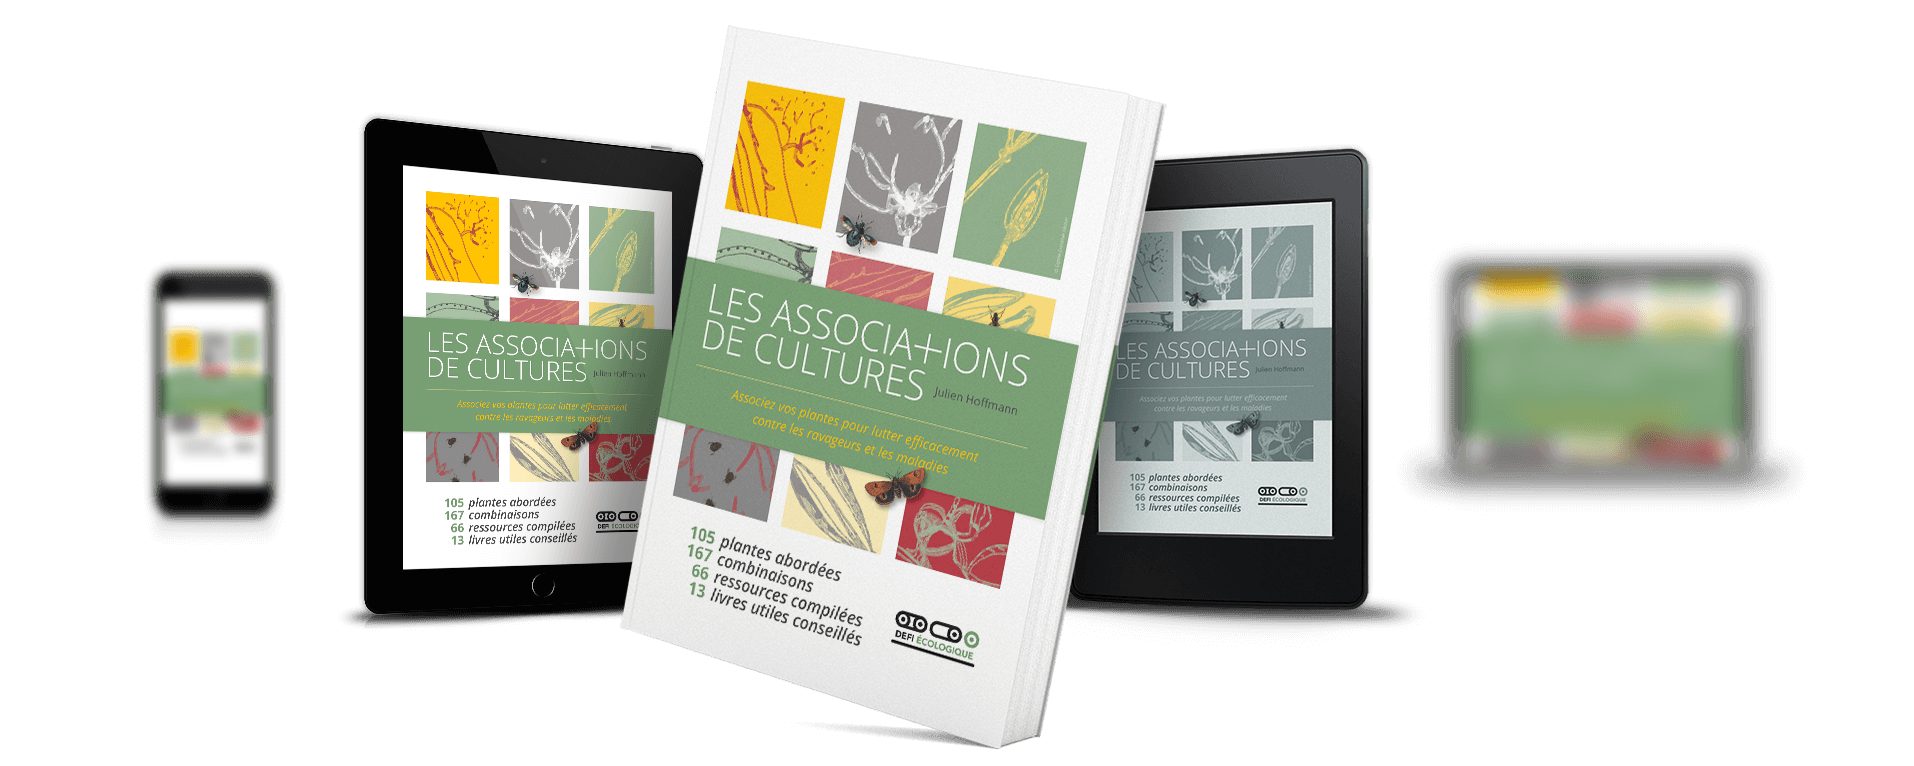 Couverture Les associations de cultures